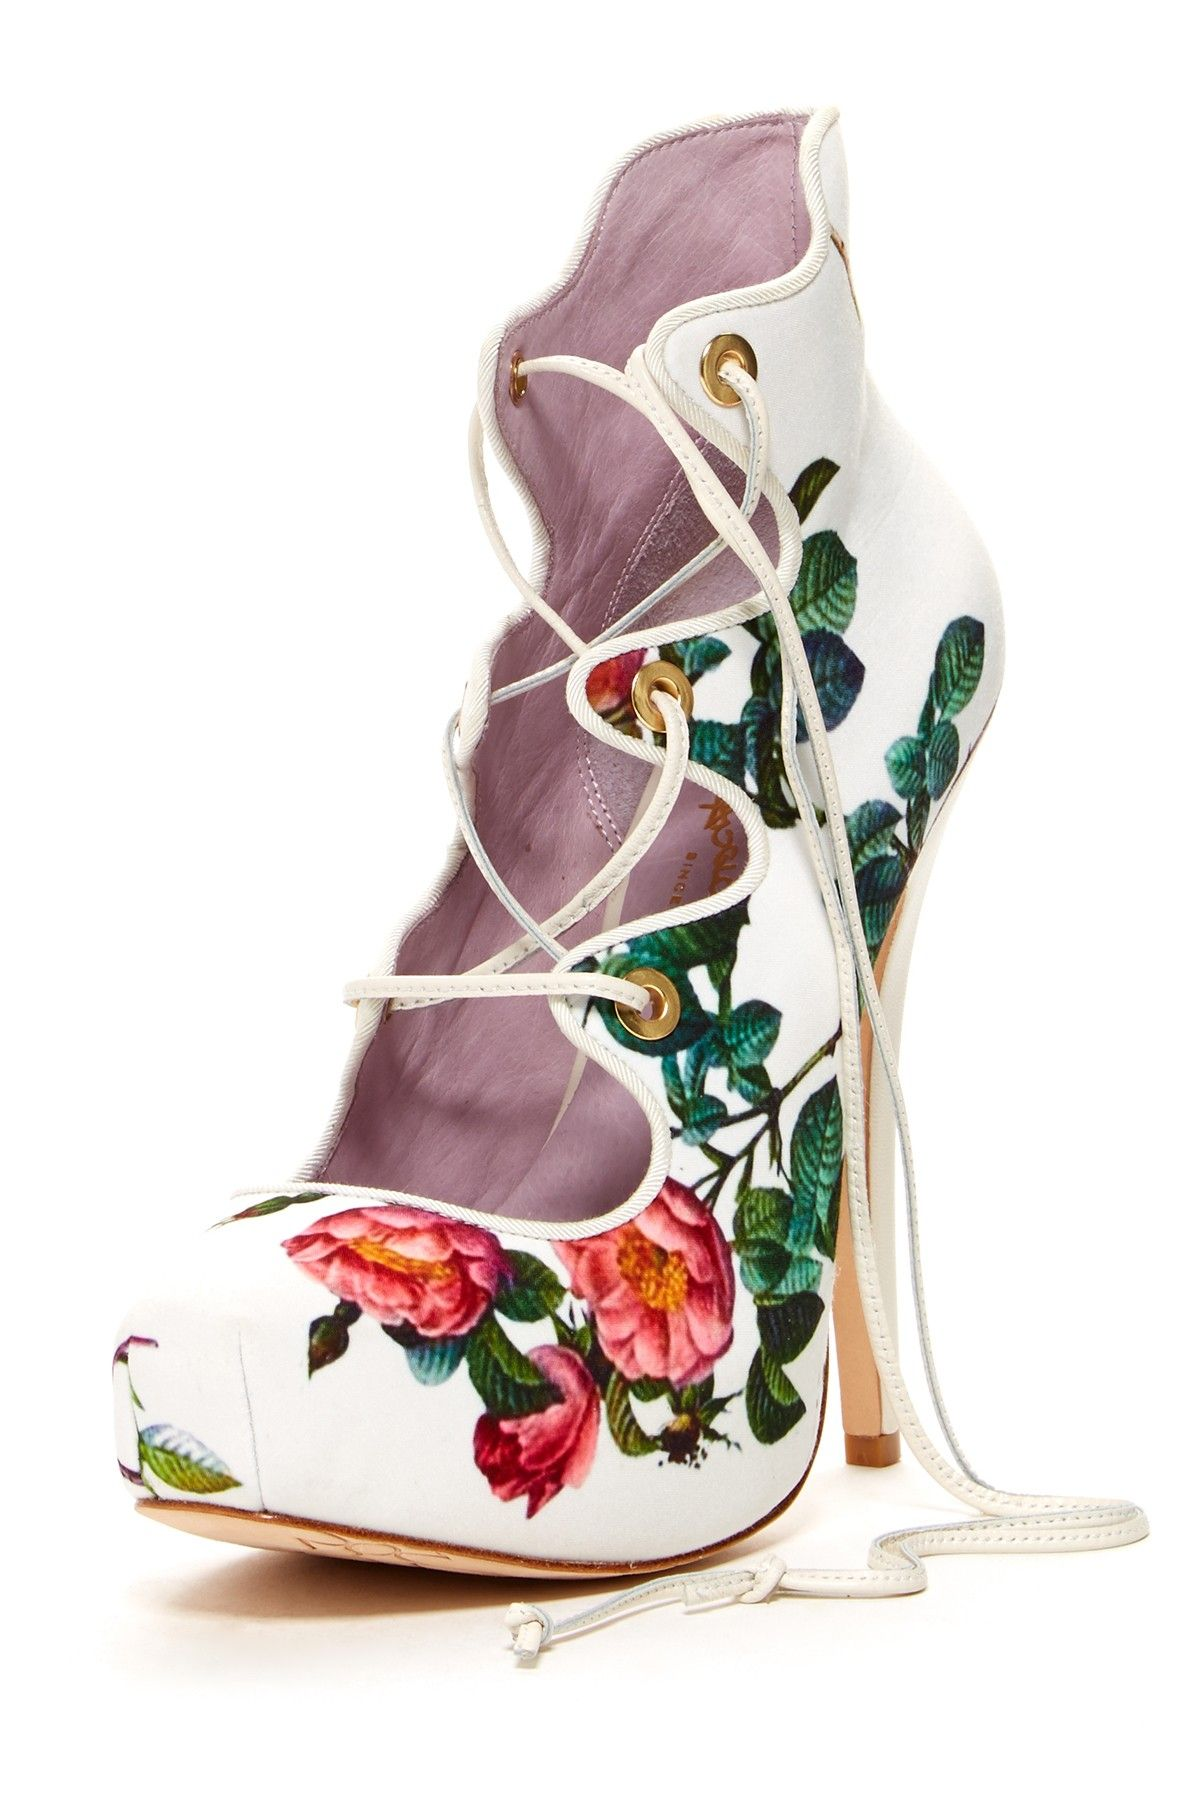 Fashion week How to flowered wear shoes for lady